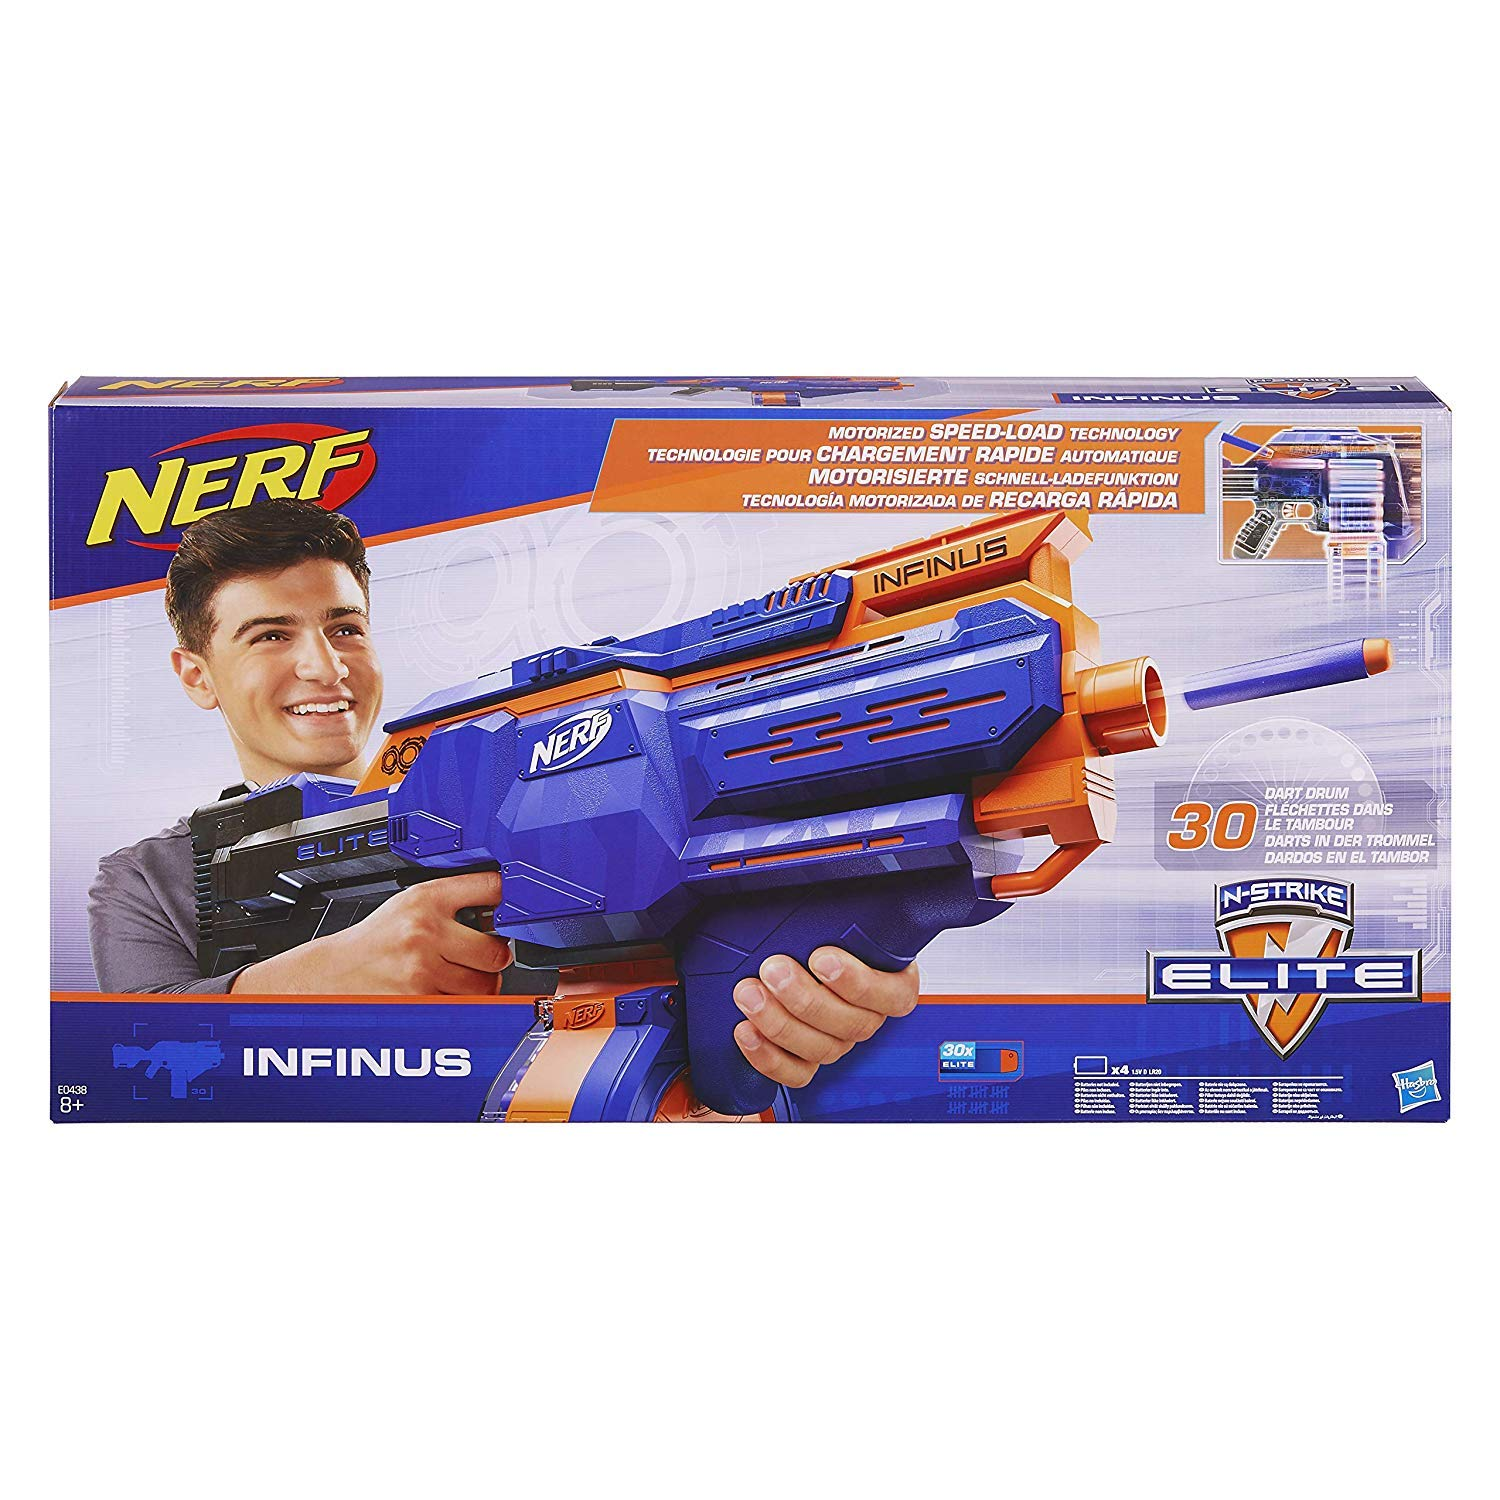 NERF Infinus N-Strike Elite Toy Motorized Blaster with Speed-Load Technology (FFP) by NERF (Image #1)